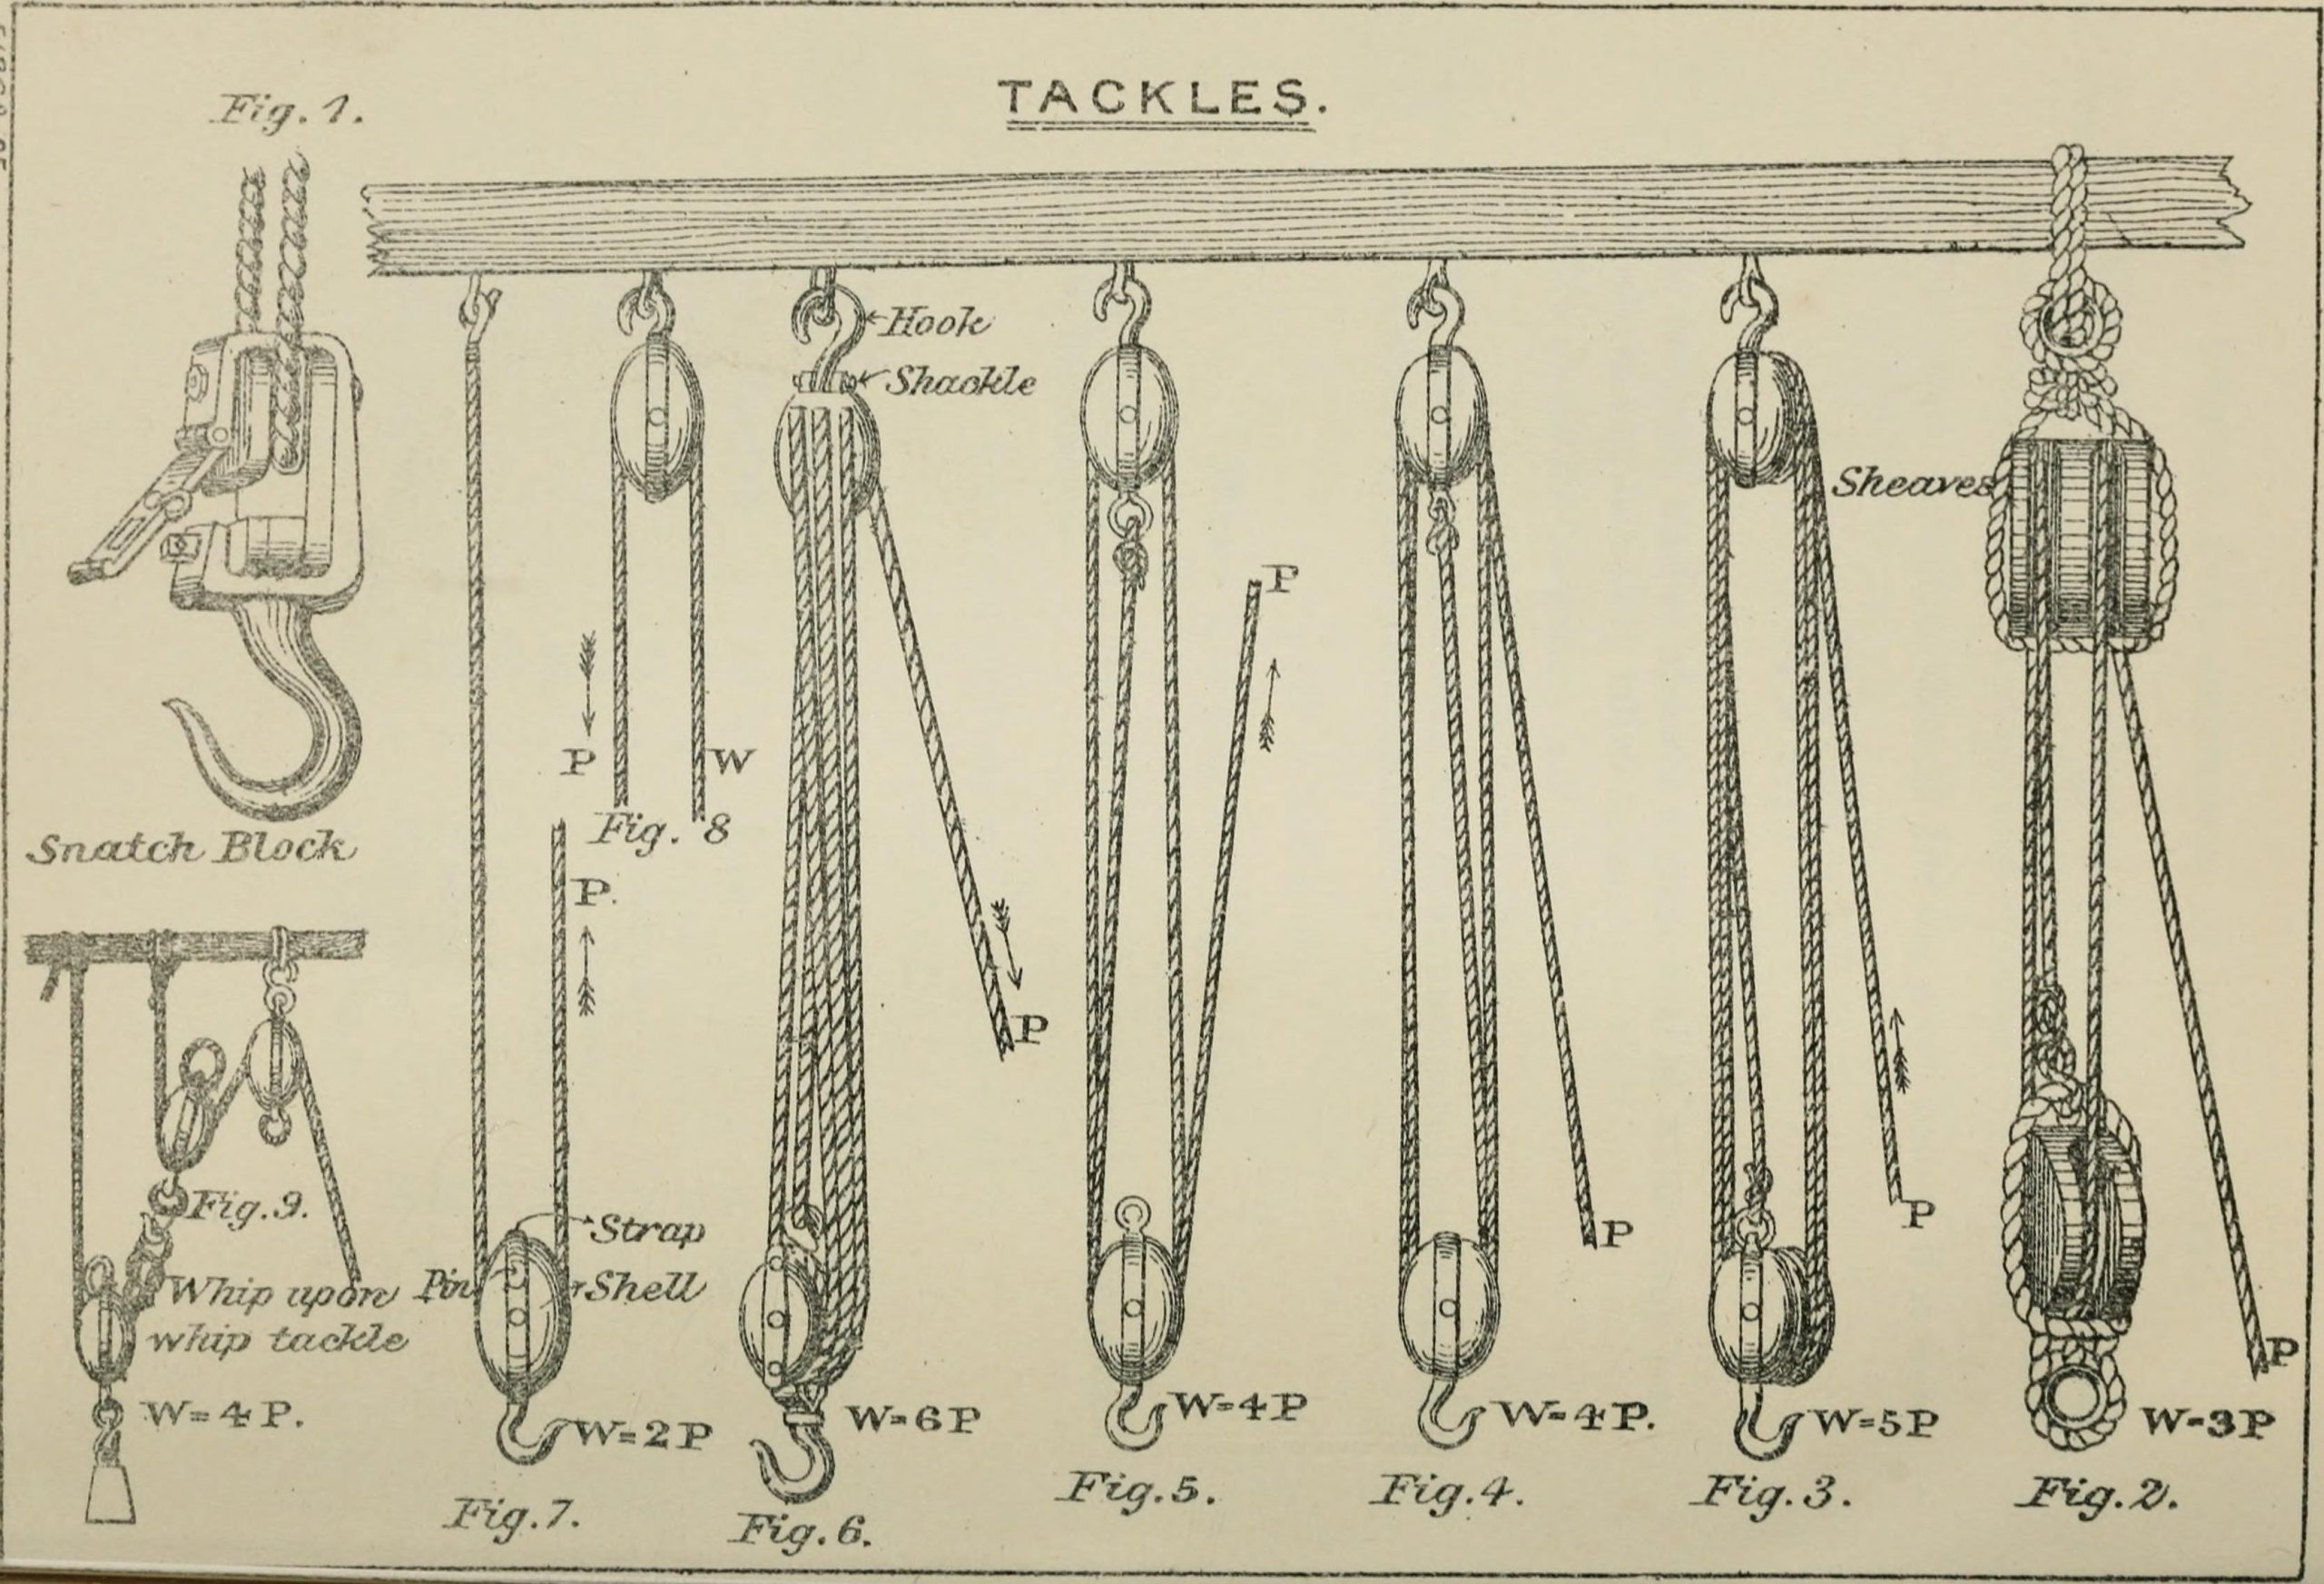 Scientific illustration of pulleys in block and tackle arrangements, increasing mechanical efficiency.